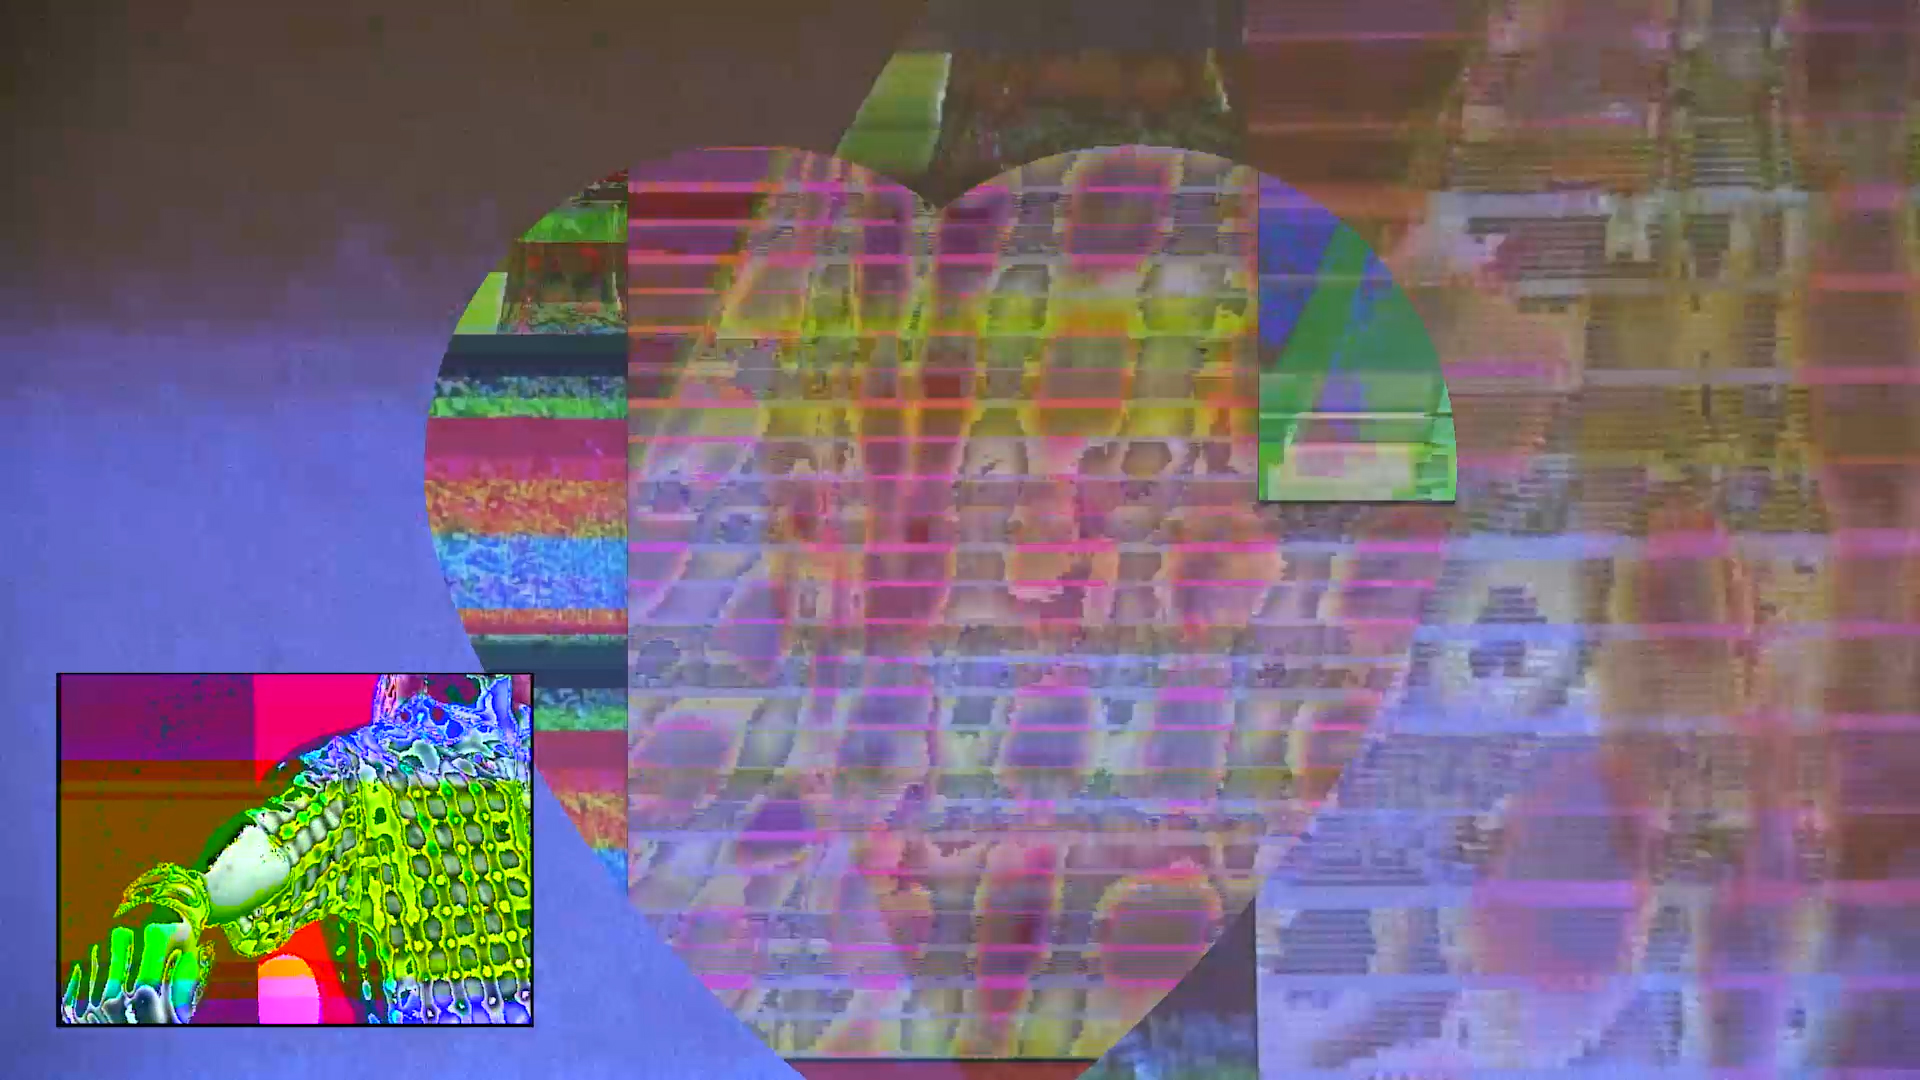 Still from video